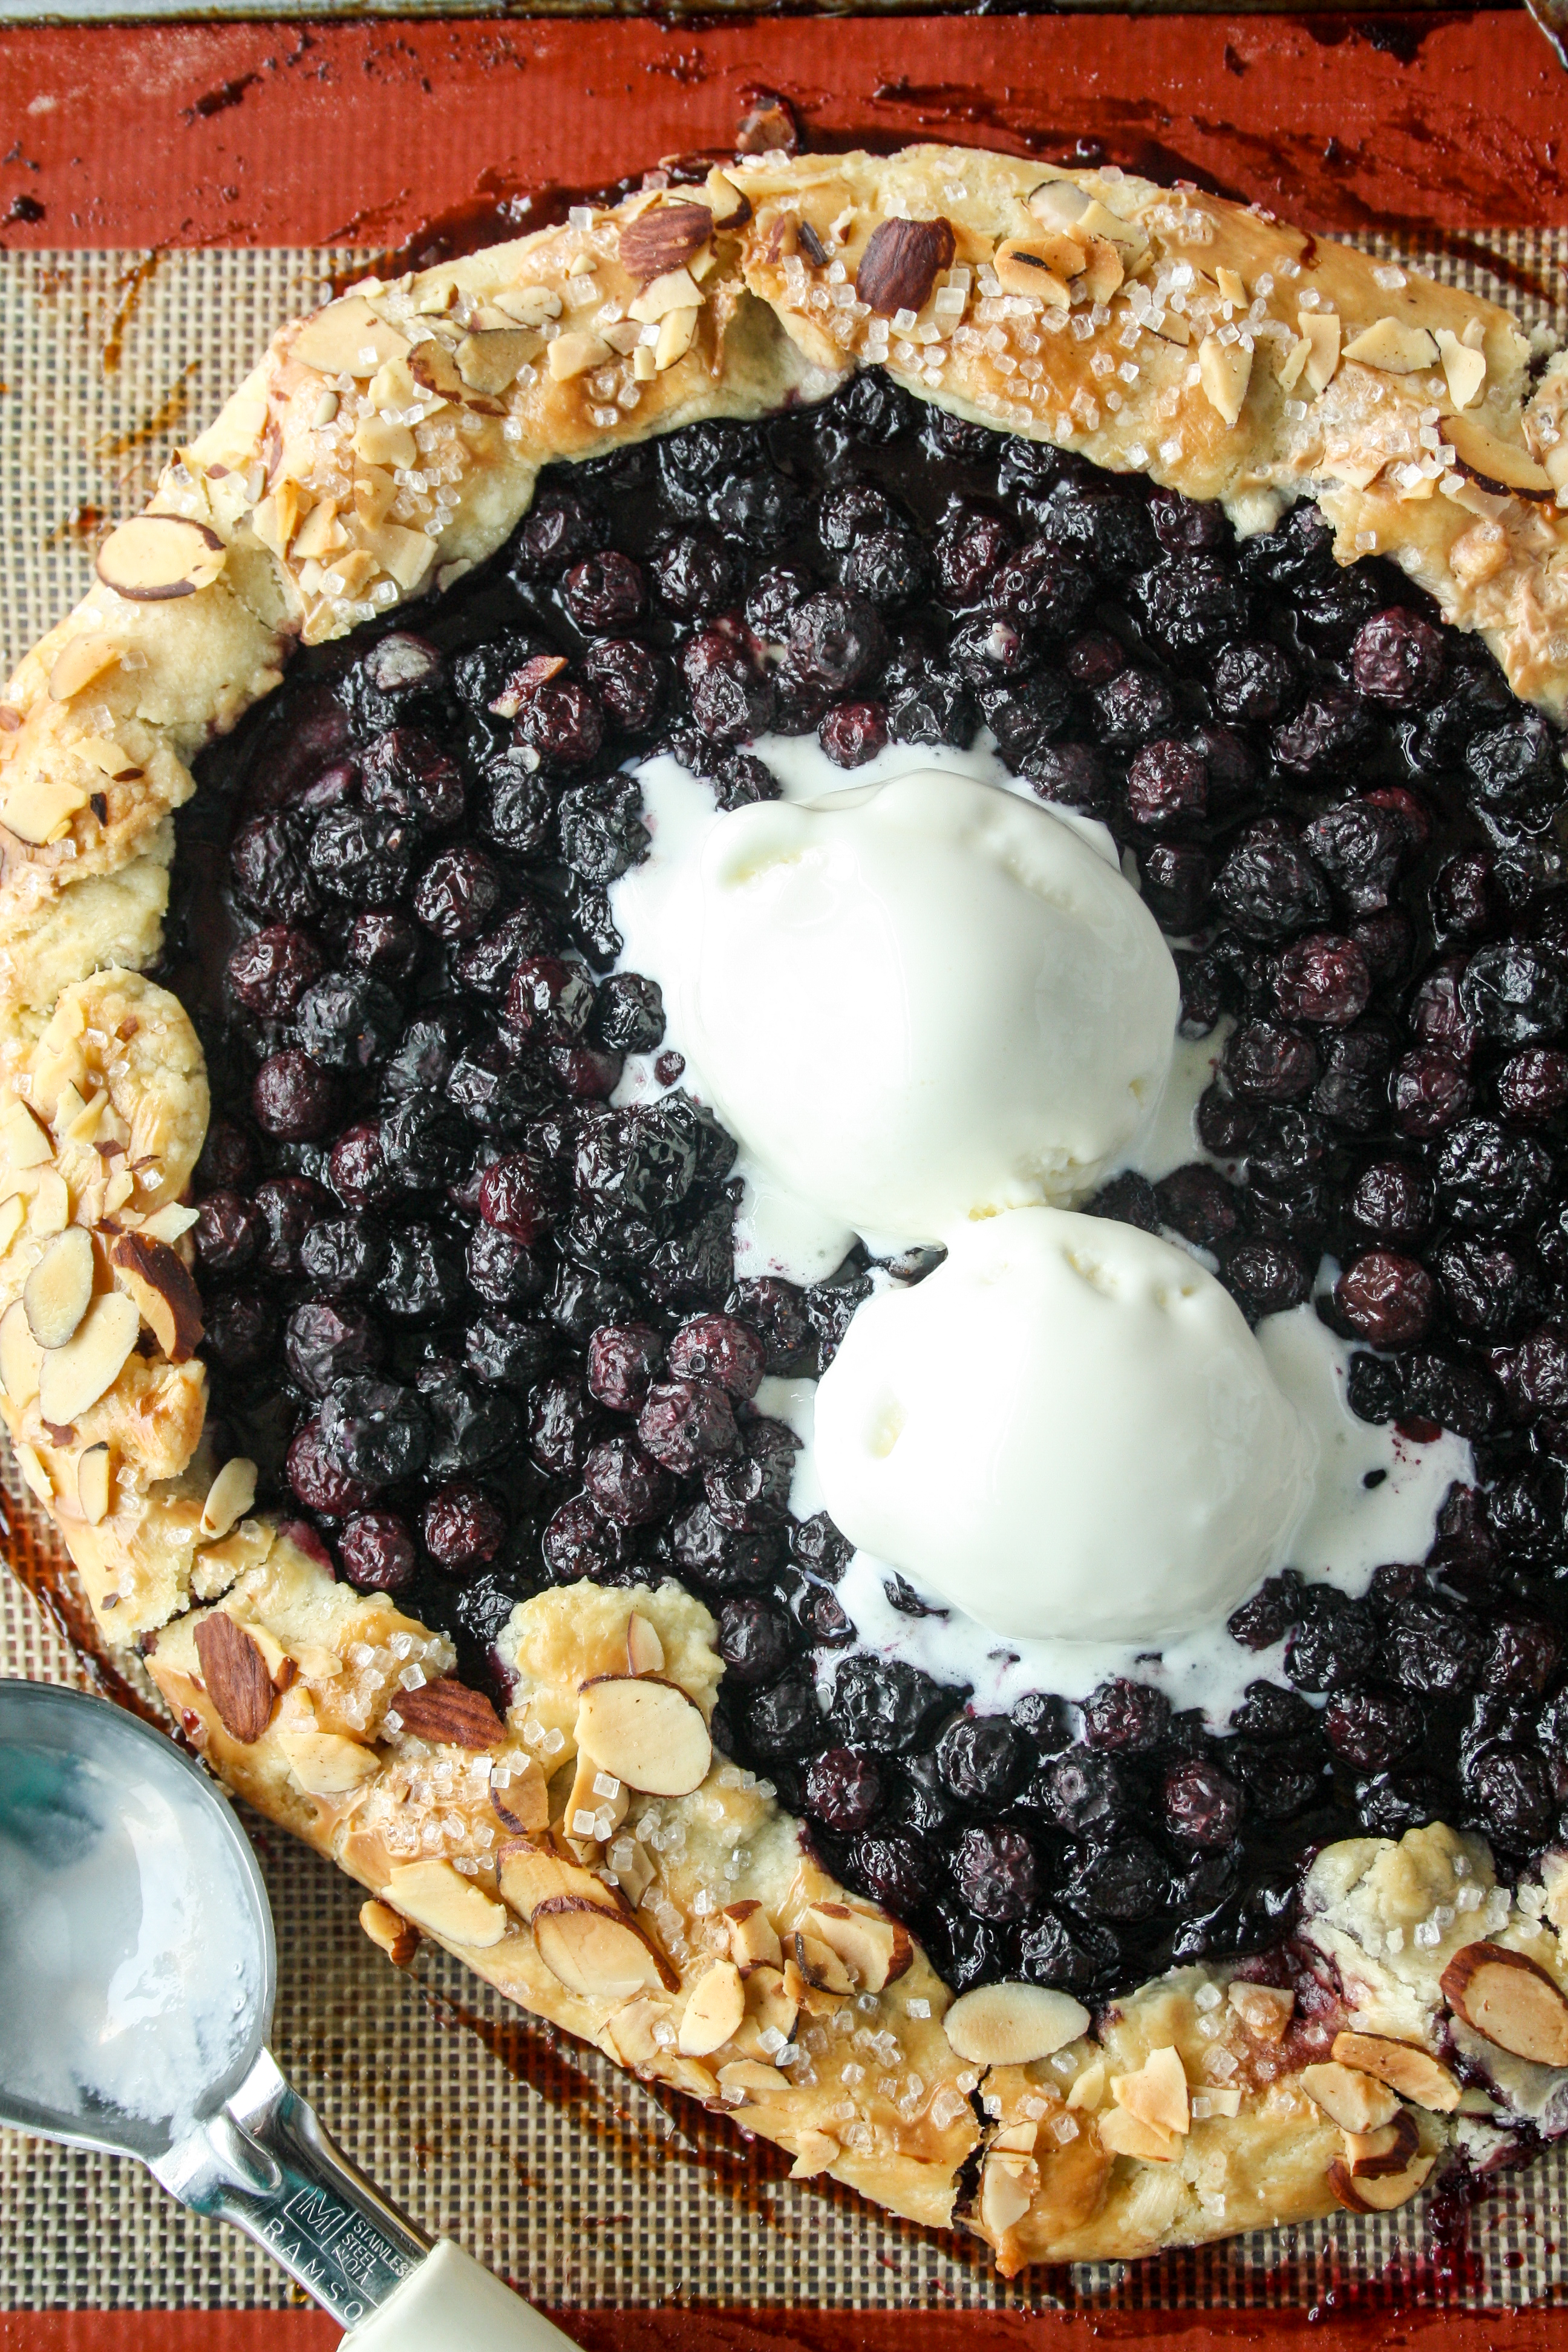 Buttery, flaky, rustic galette loaded with juicy blueberries!